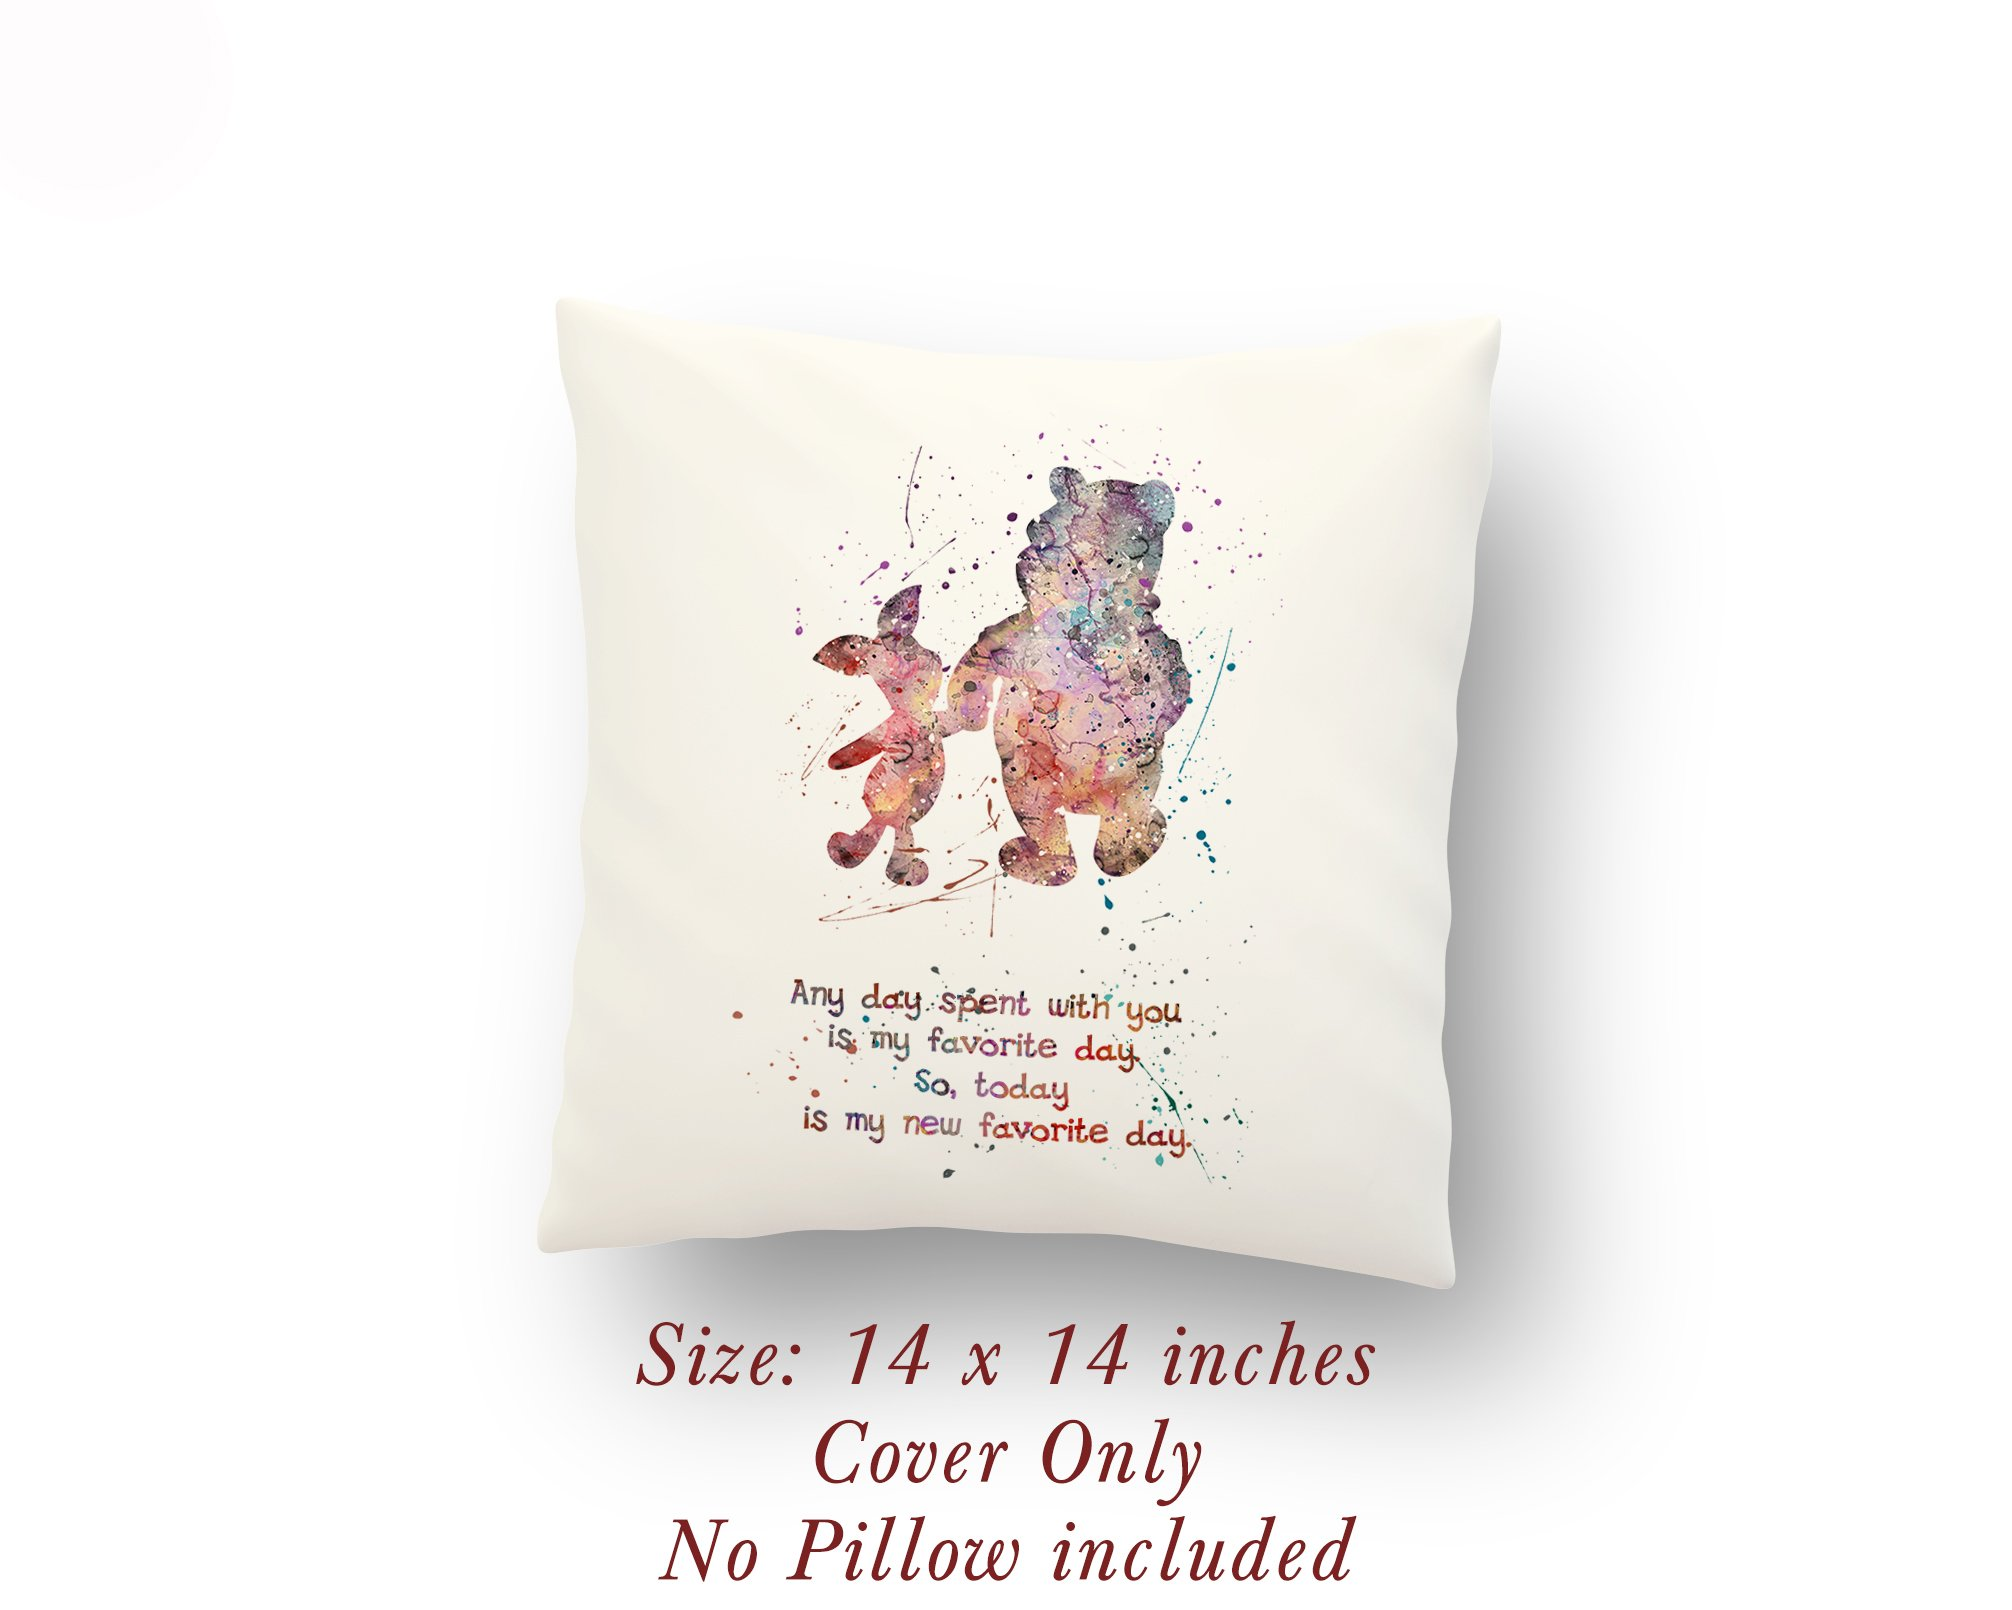 Winnie-the-Pooh and Piglet Quote 14 x 14 inches Pillow Cover - Baby